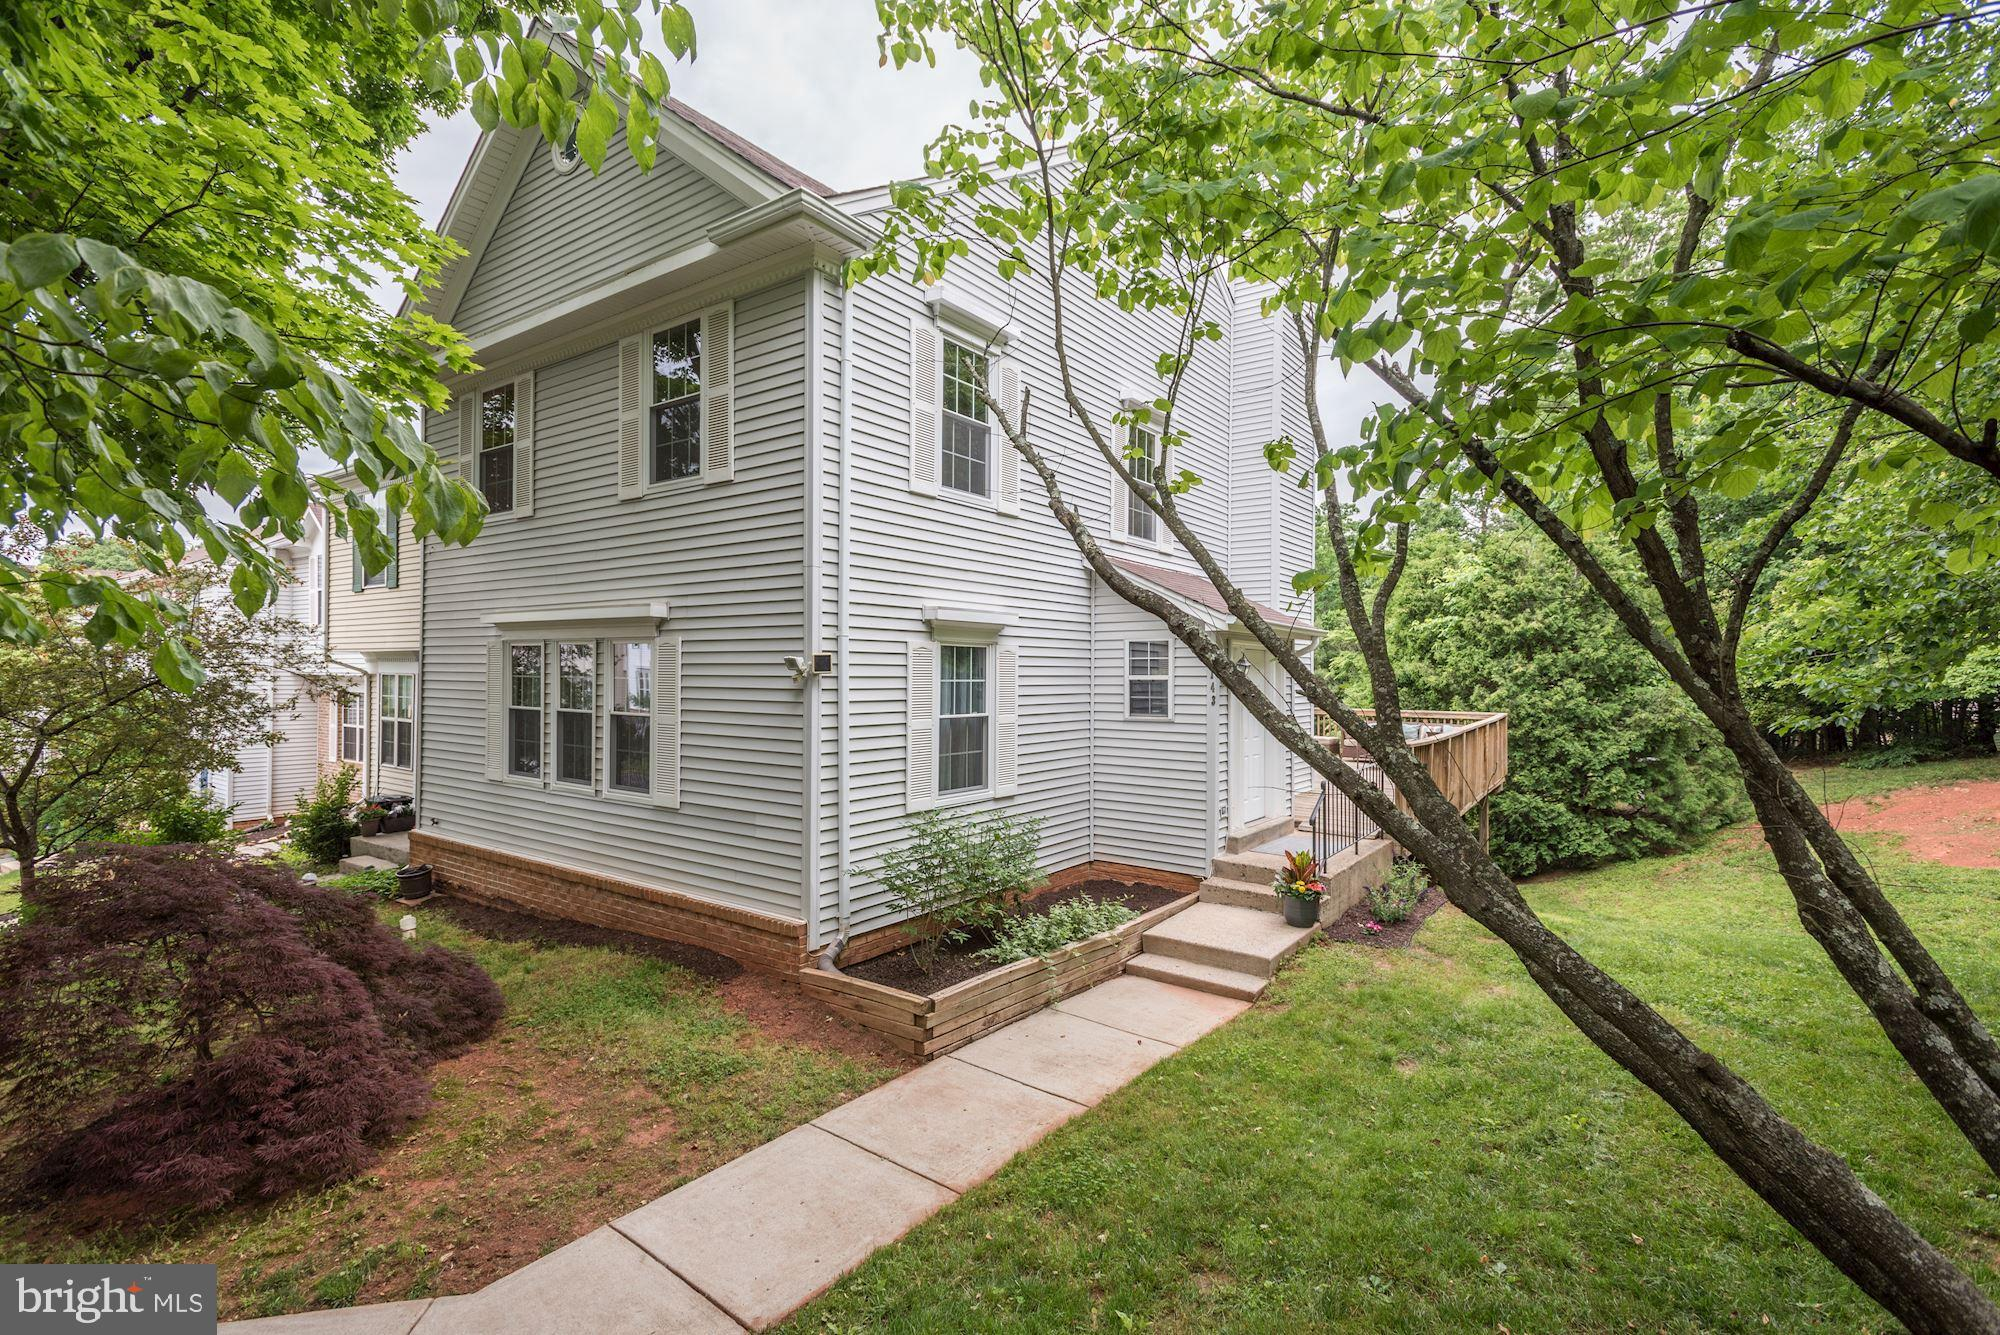 OPEN SUNDAY, 7 June 2-4 p.m. This one is really beautiful! The kitchen was remodeled just like you w